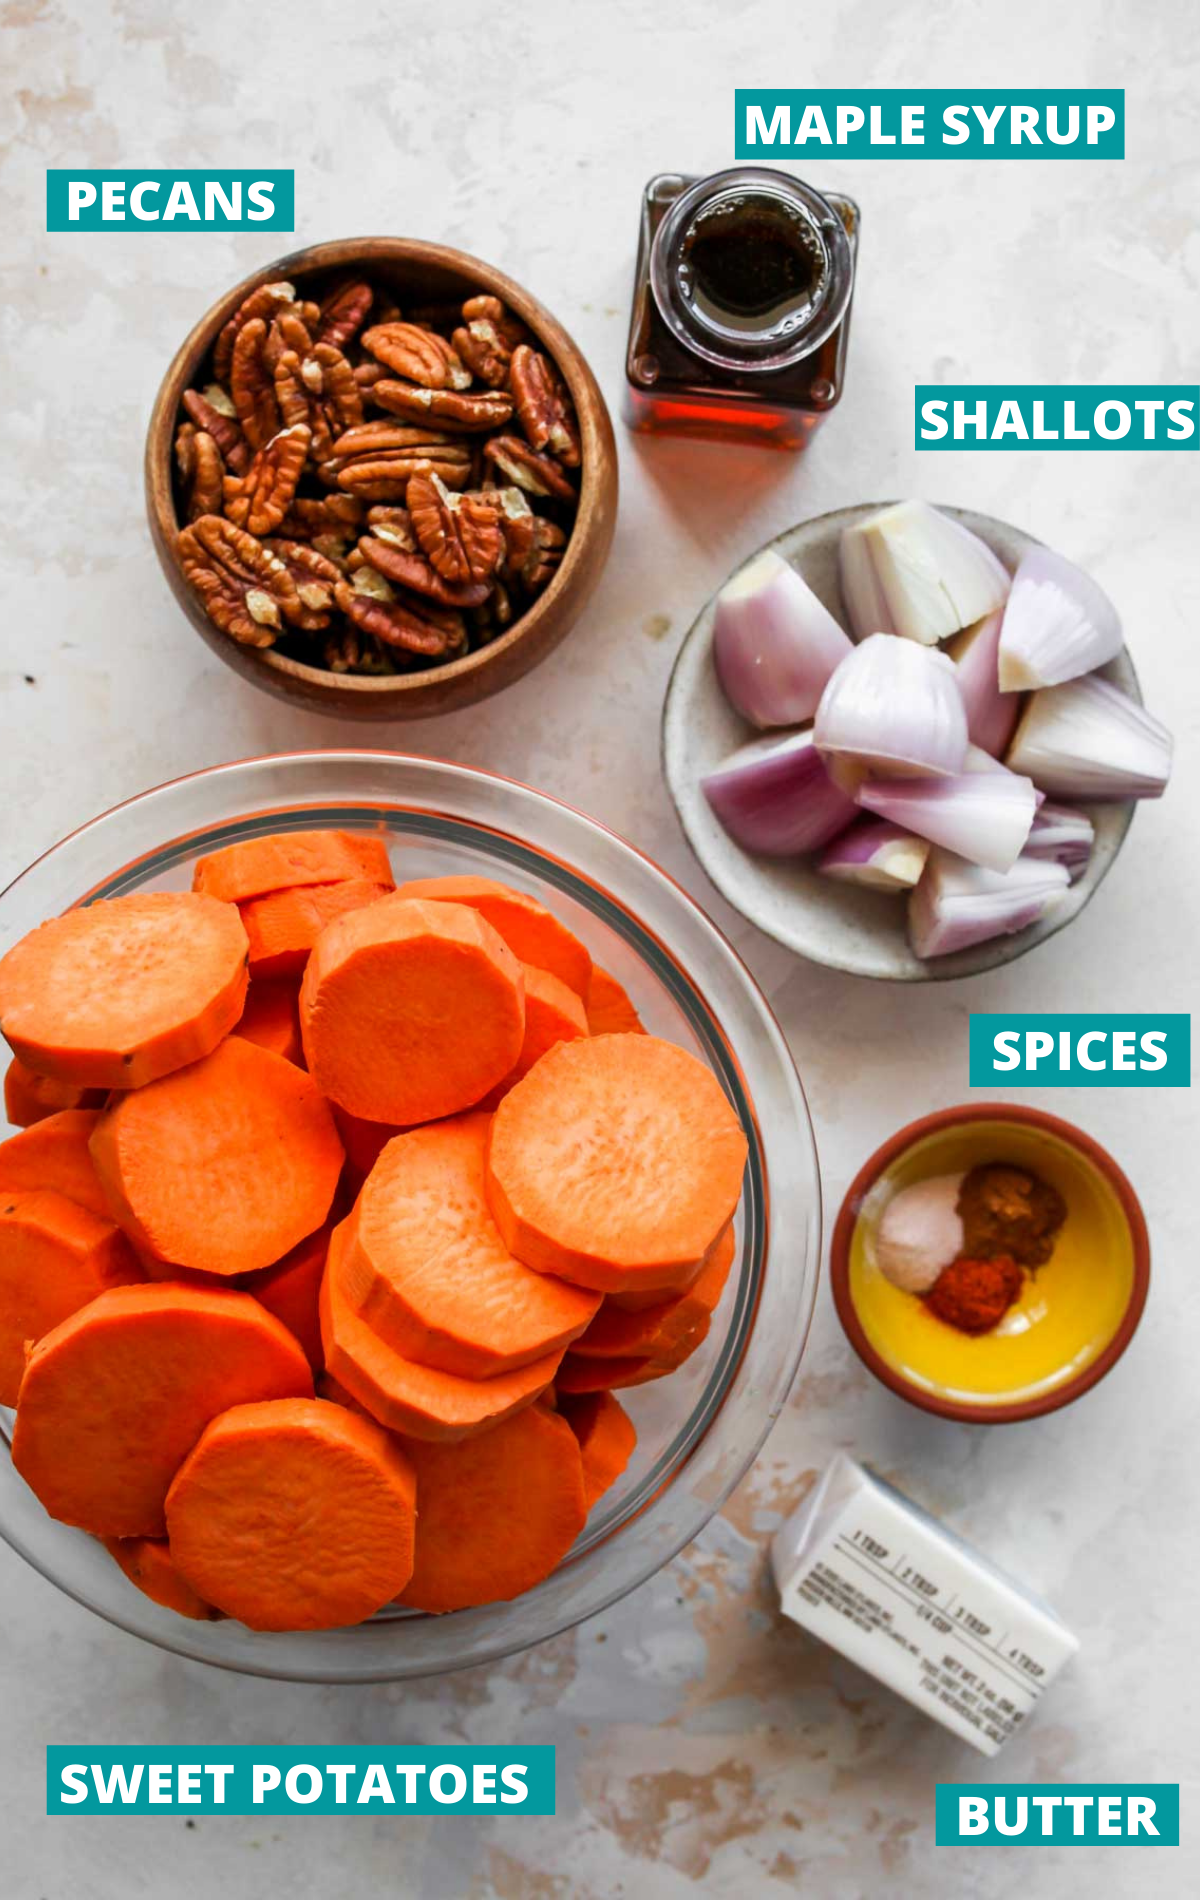 Sweet potatoes, pecans, shallots, and spices in separate bowls with blue labels